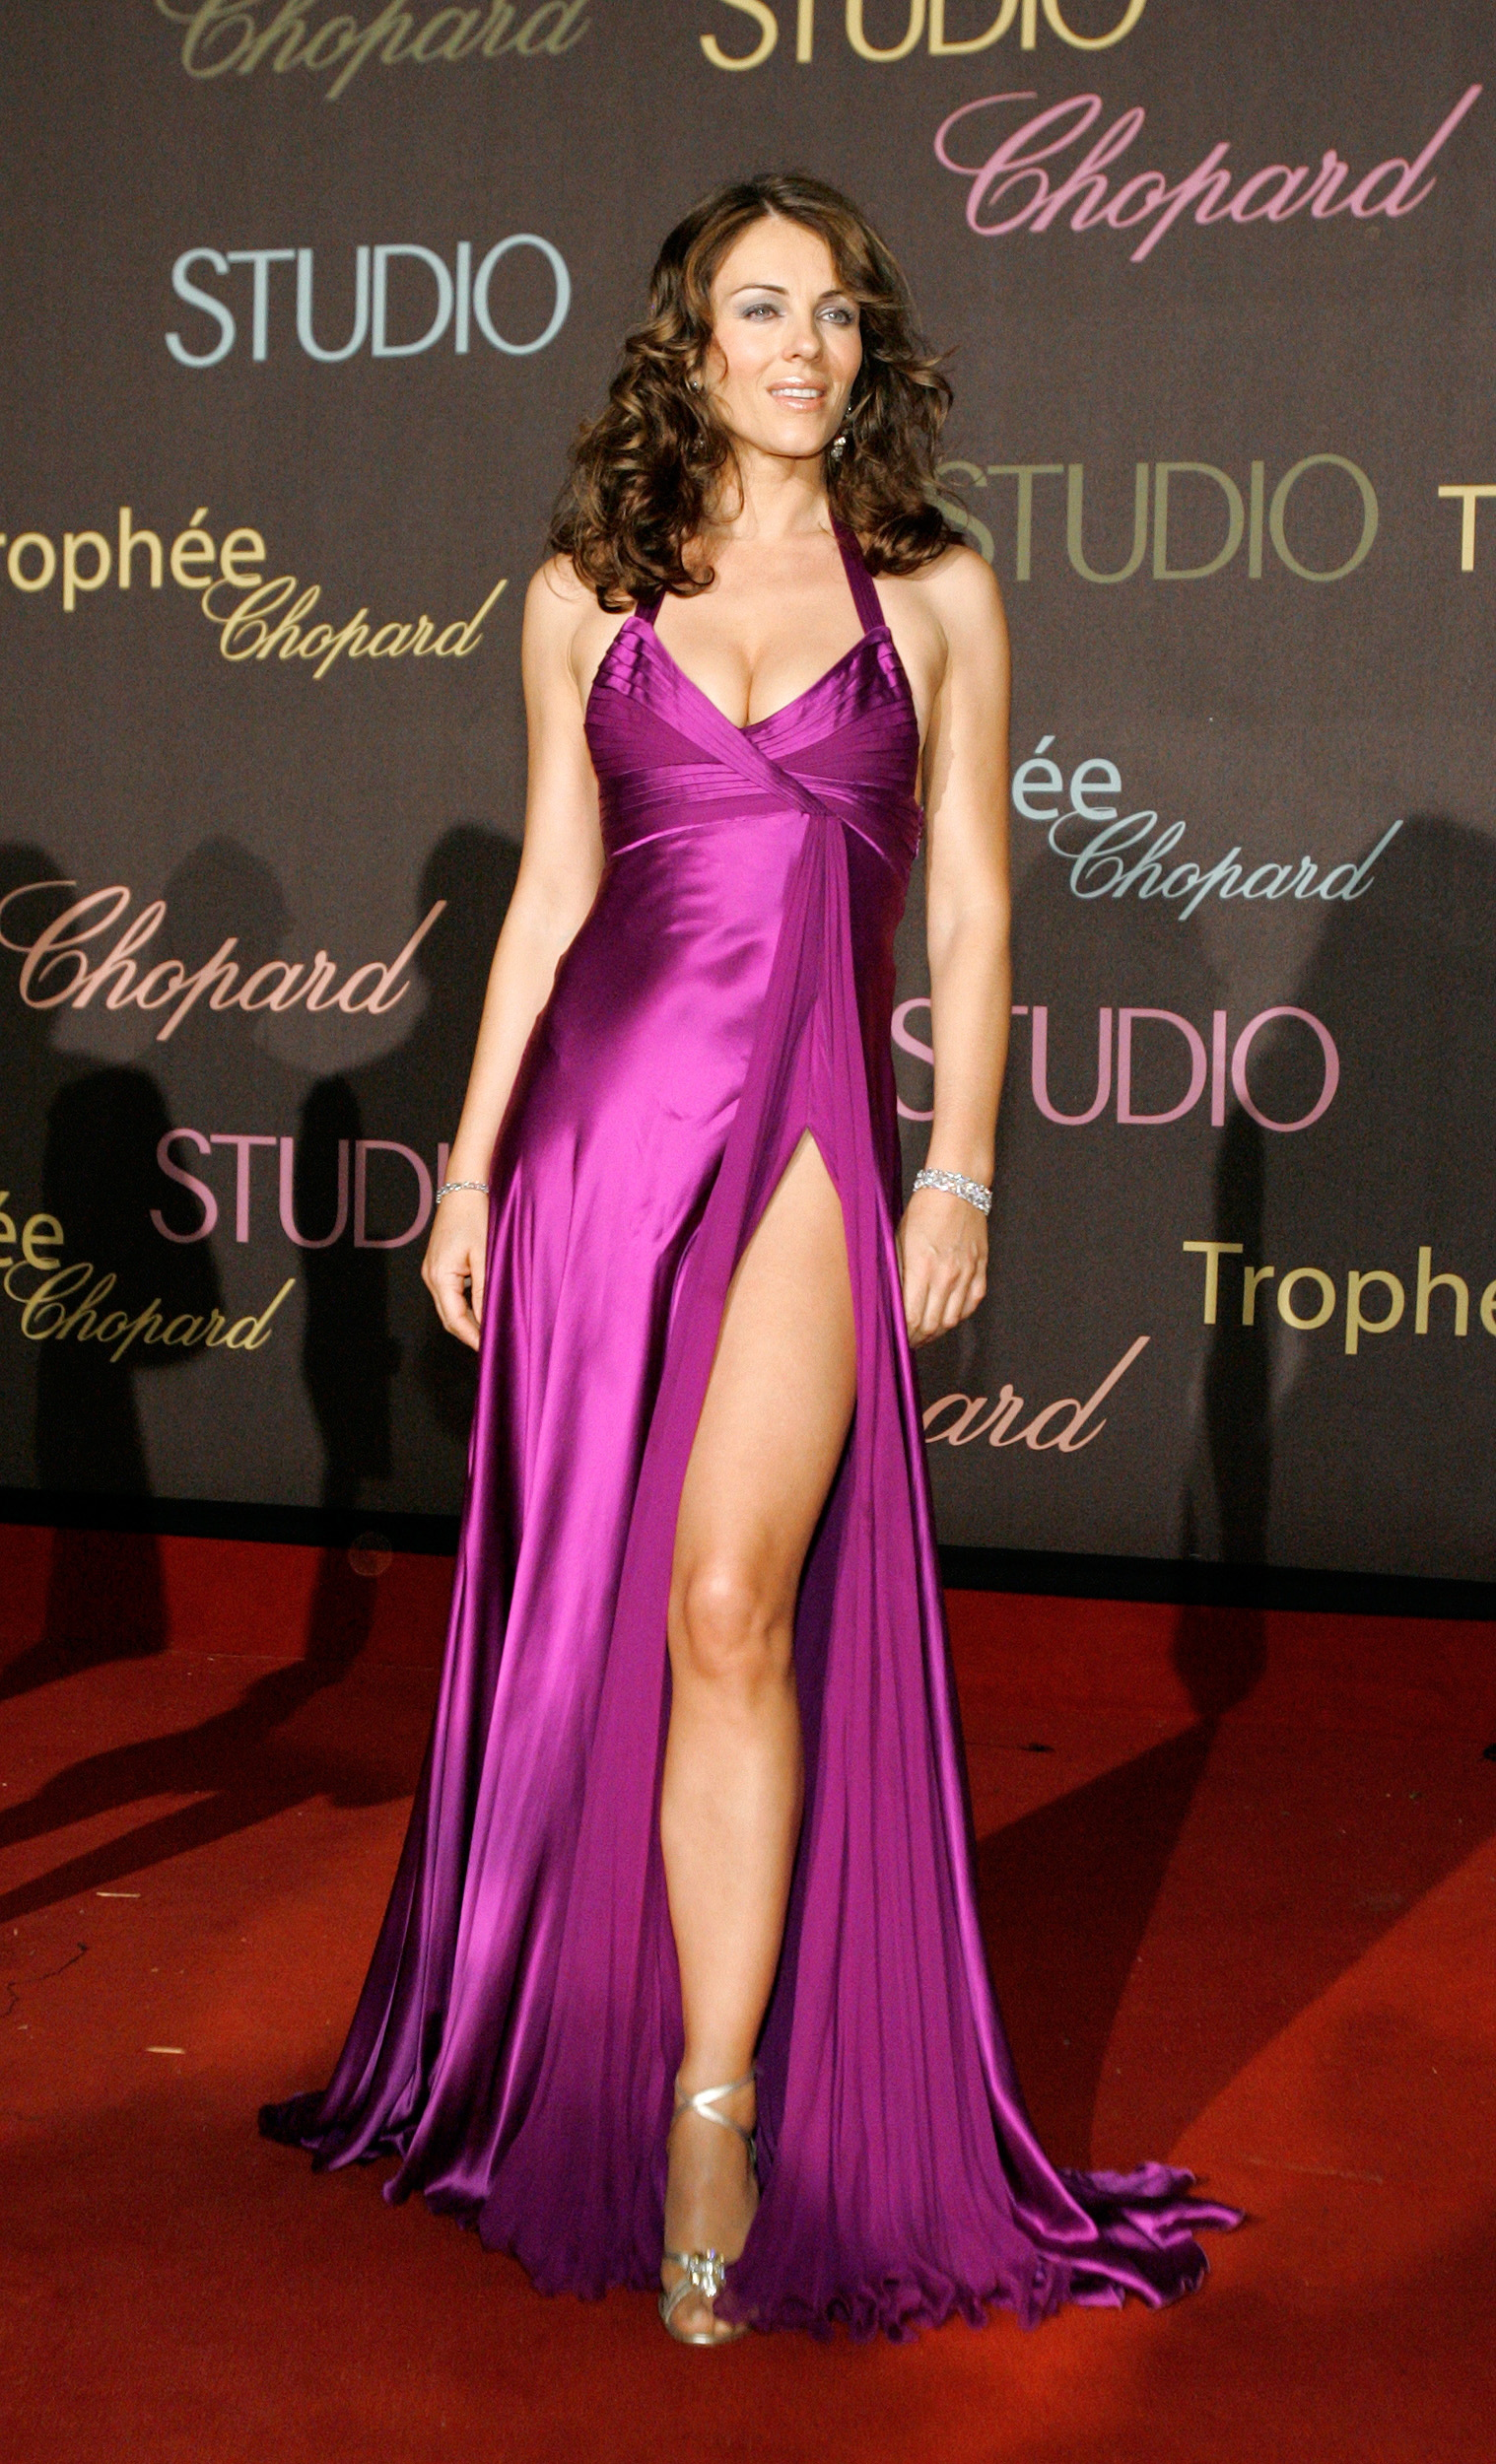 Actress Elizabeth Hurley attends the Chopard trophy ceremony in Cannes May 20, 2006. Chopard honors masculine and feminine acting revelations during the annual Cannes Film Festival.